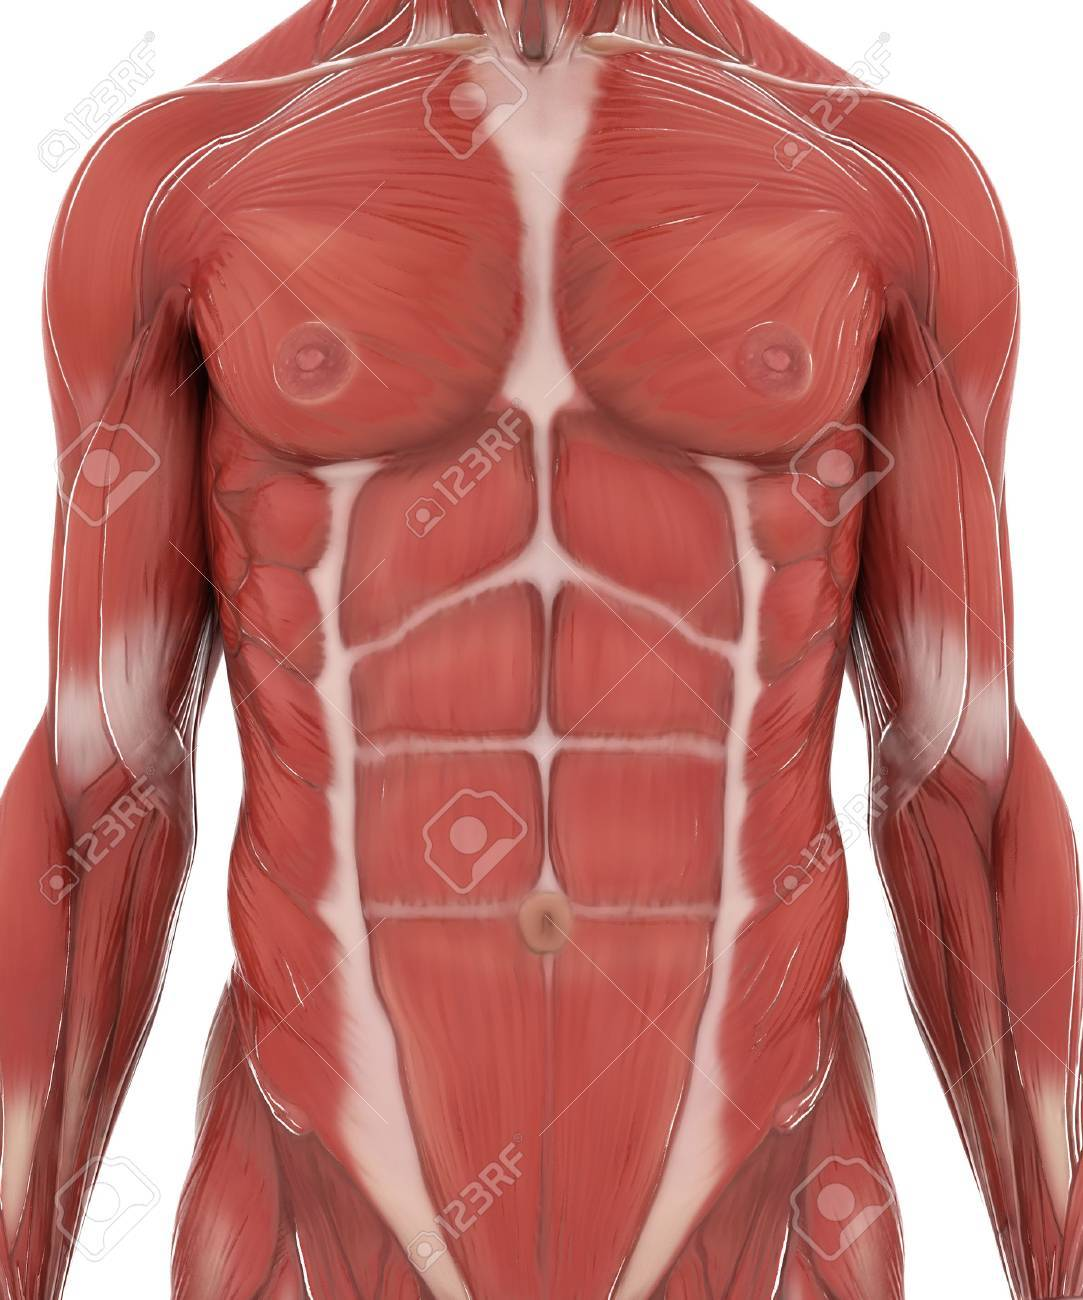 Anatomy Muscle Map On White Isolated Stock Photo, Picture And ...